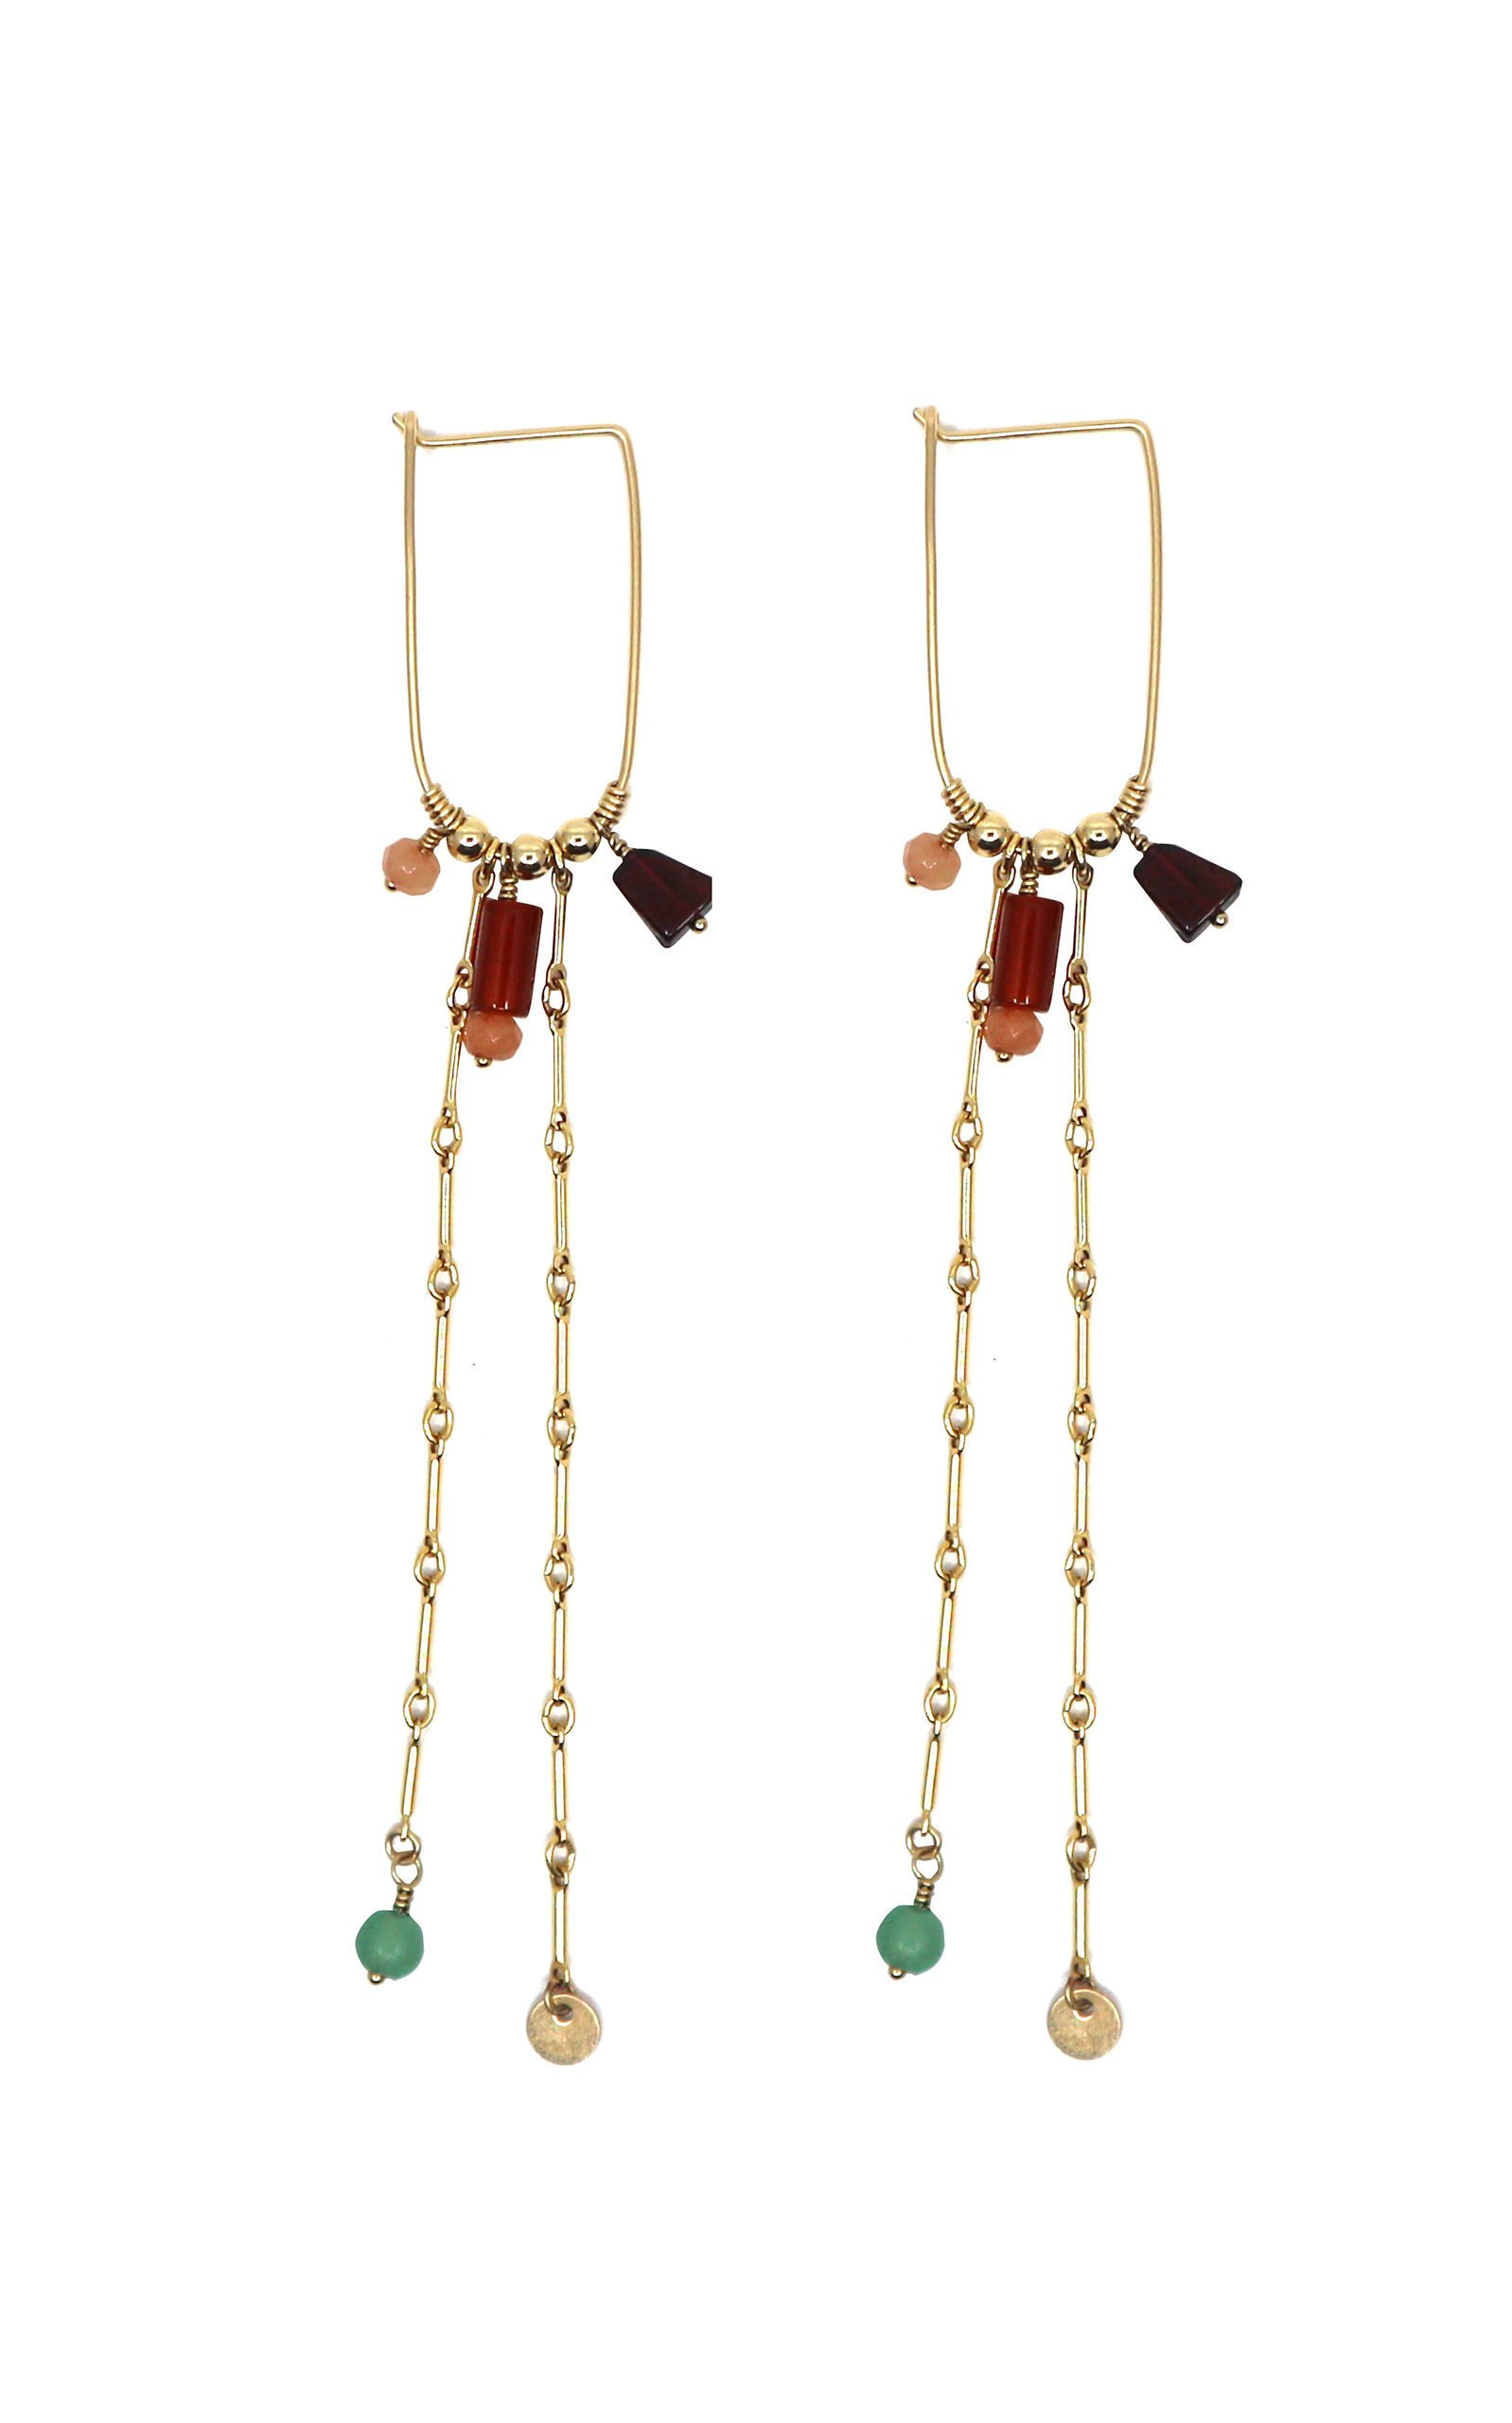 Petite Grand x Bondi Born Lucius Bead Earrings